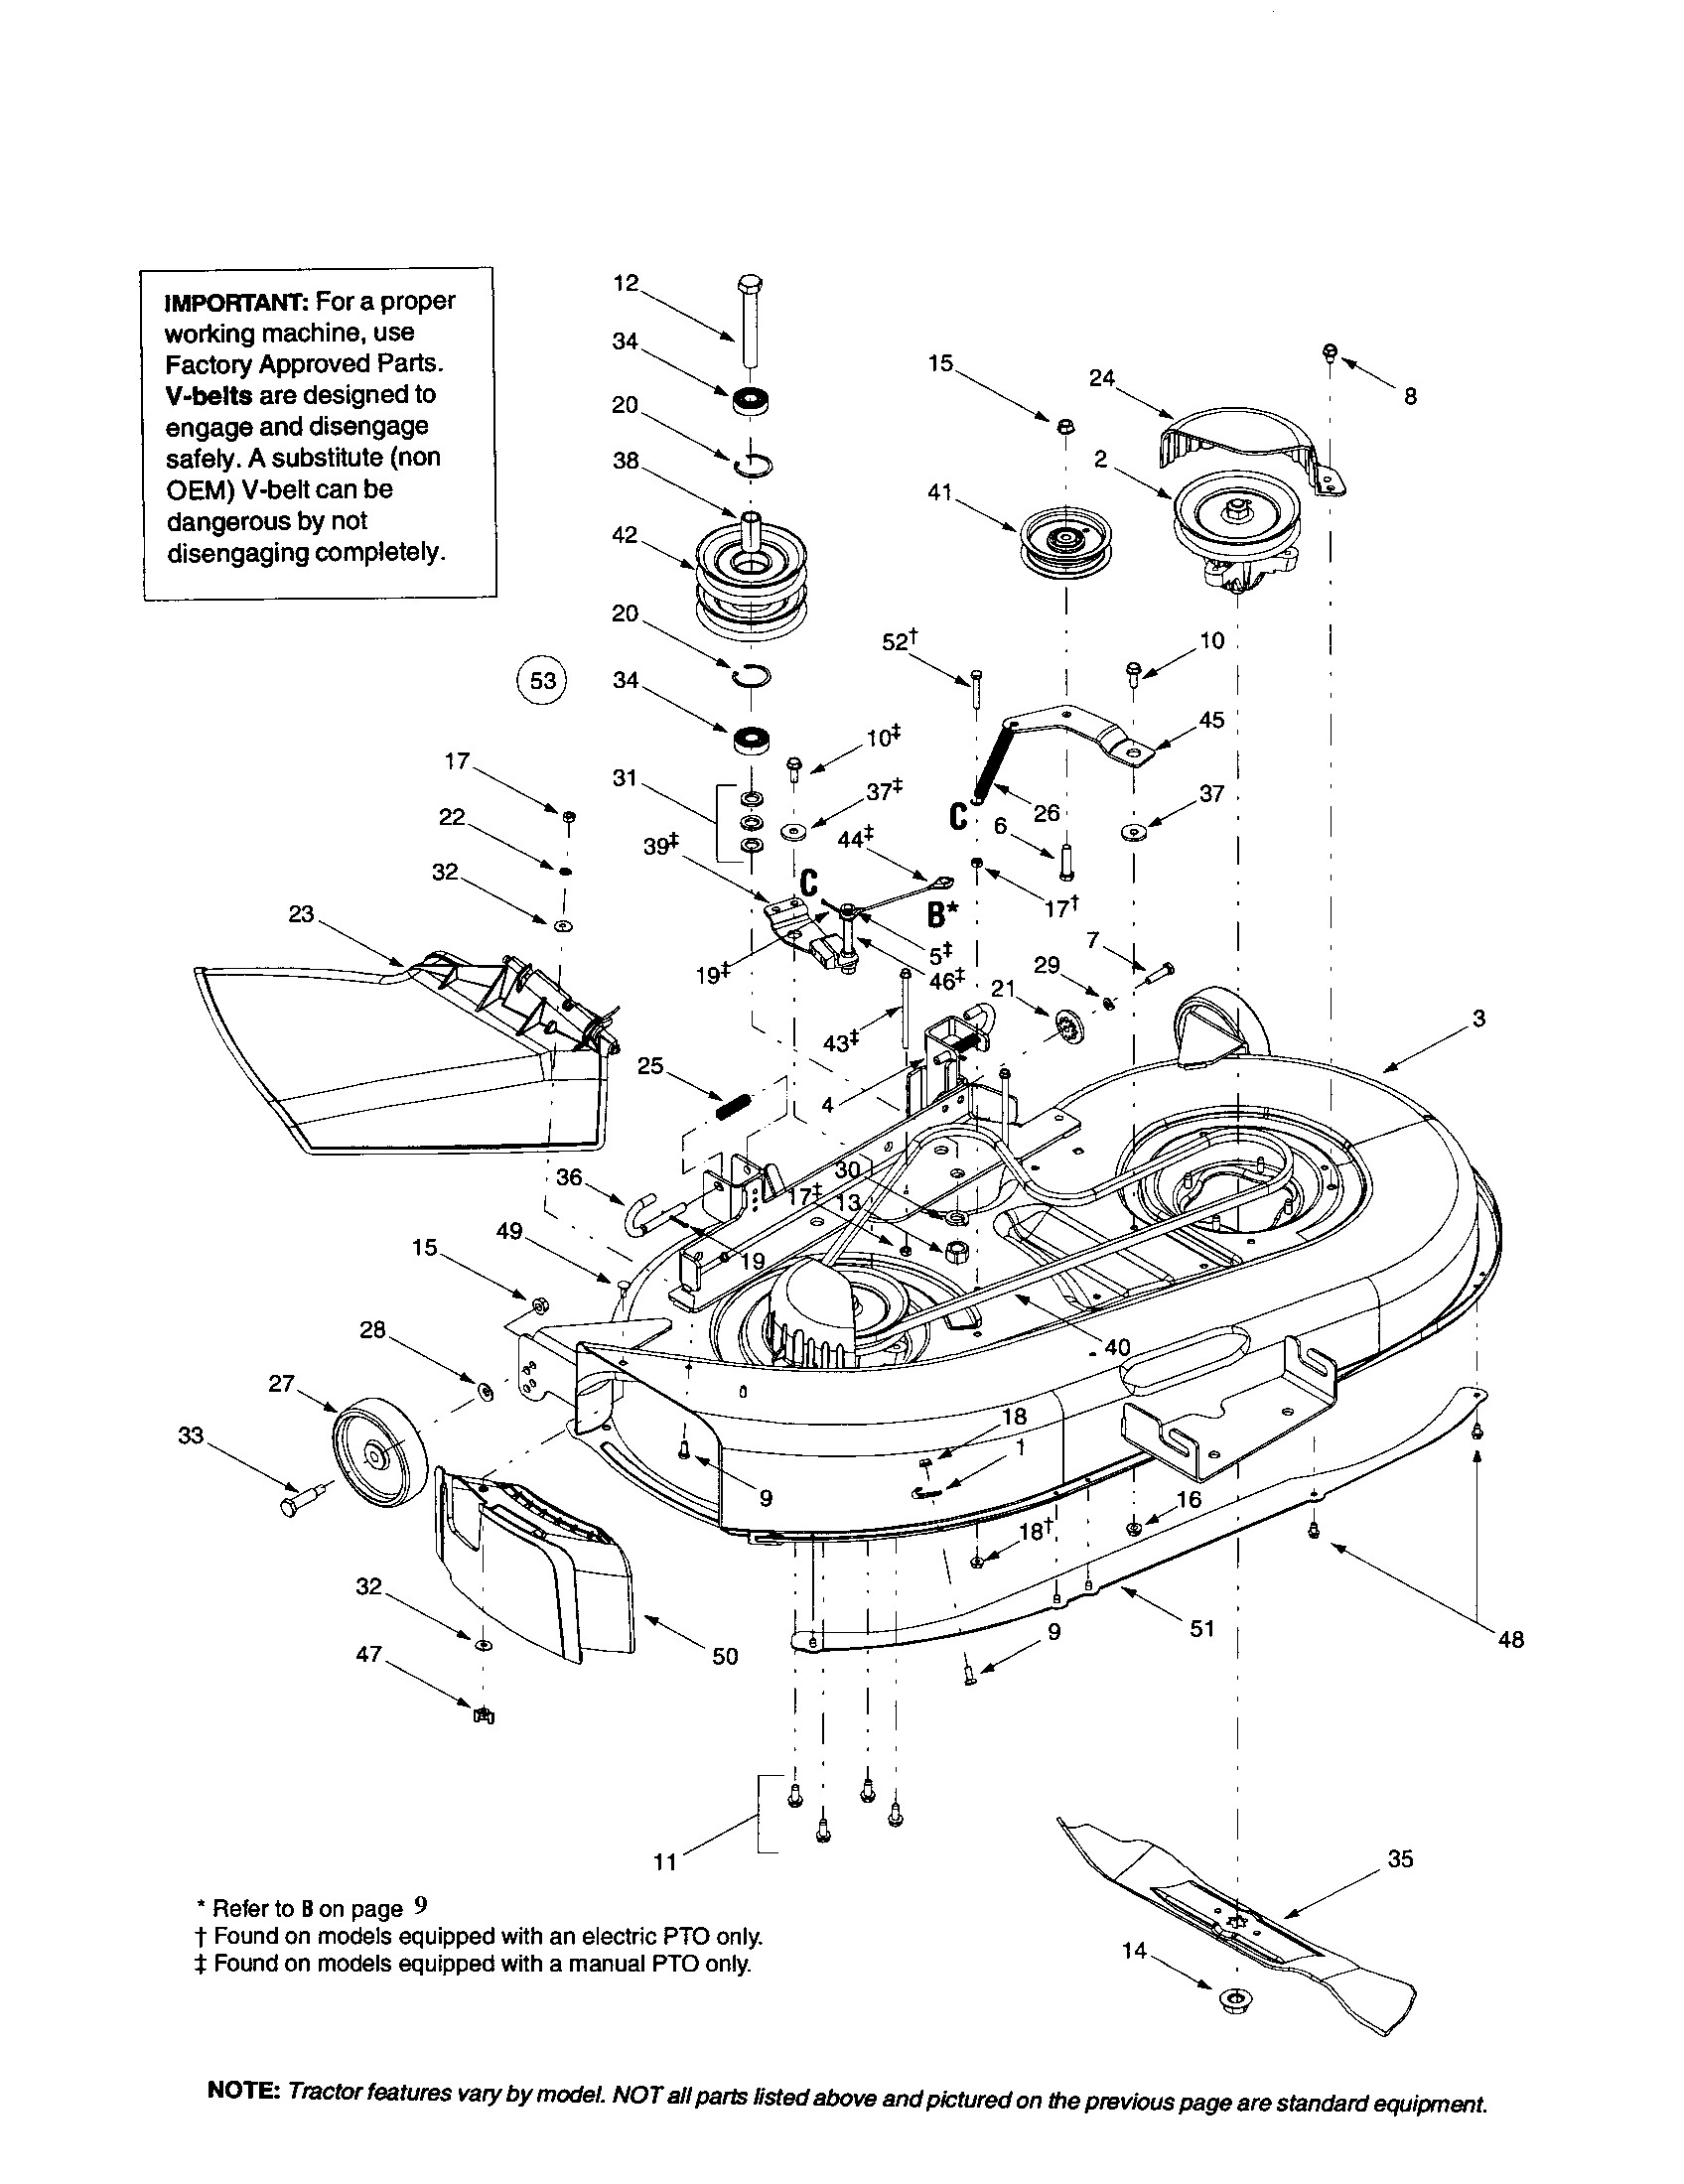 Dixon Lawn Mower Parts Diagram - Auto Electrical Wiring Diagram on dixon 4423 wiring-diagram, dixon 4421 parts diagram, dixon mower repair, dixon mower model numbers, dixon mower electric starter, dixon mower cover, dixon zero turn lawn mowers, dixon mower decks, dixon mower accessories, dixon ram 44 parts diagram, dixon 4515 drive belt diagram, dixon 4421 belt routing diagram, snapper mower parts diagram, dixon speedztr 30 problems, lawn mower engine diagram, dixon mower engine, dixon mower clutch, dixon mower battery, dixon mower carburetor, dixon mower parts,